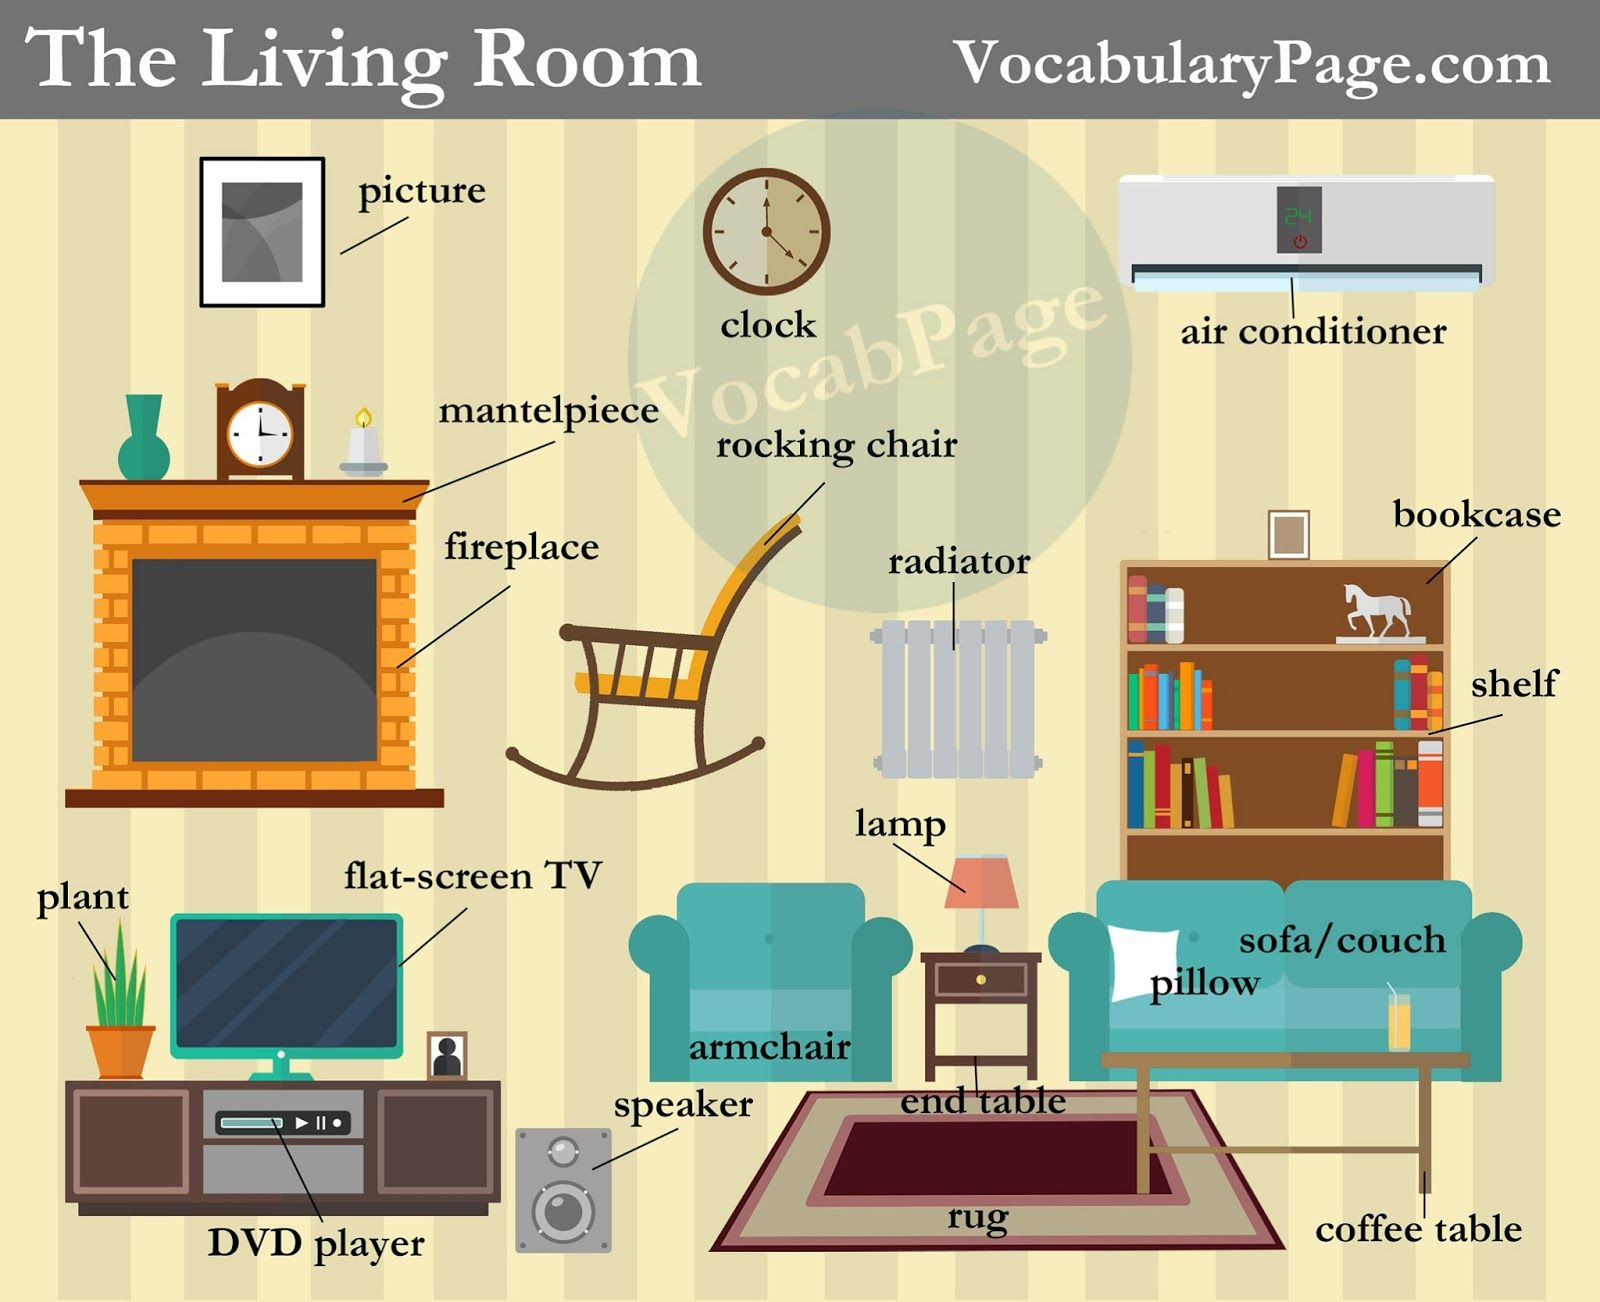 A living room british english also sitting room is a room where people sit